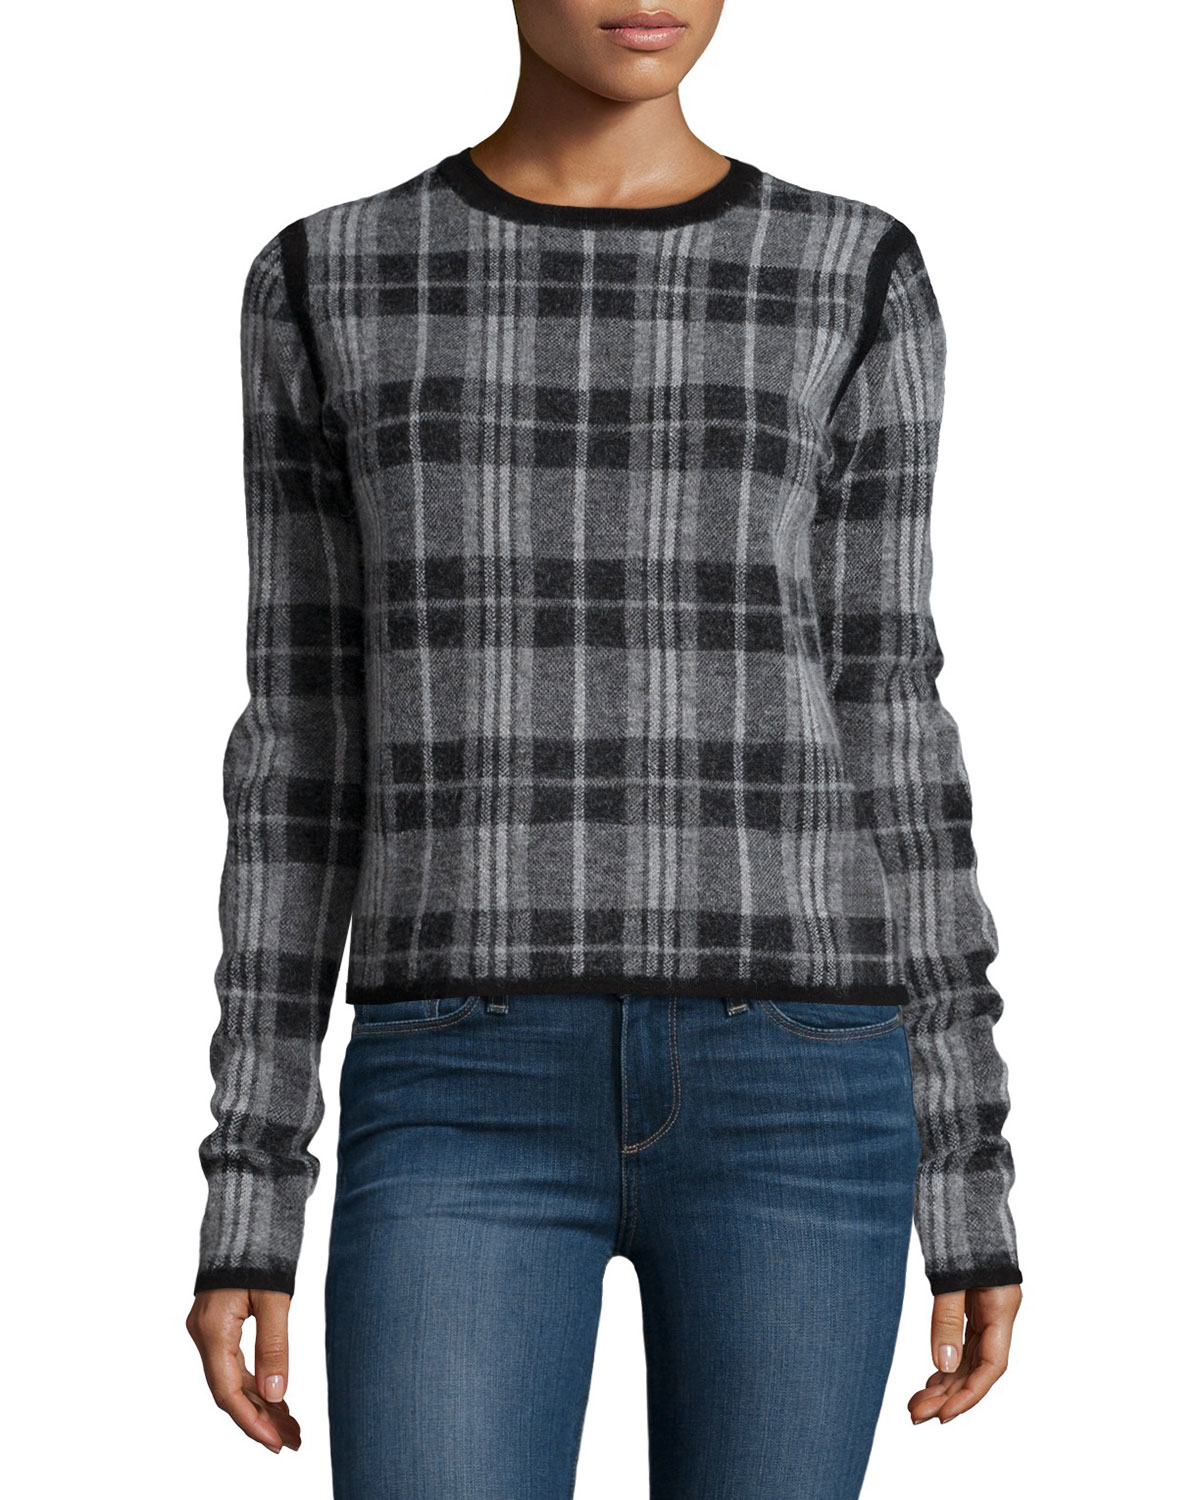 Lyst paige autry long sleeve plaid sweater in gray for Adam lippes women s long sleeve vee t shirt